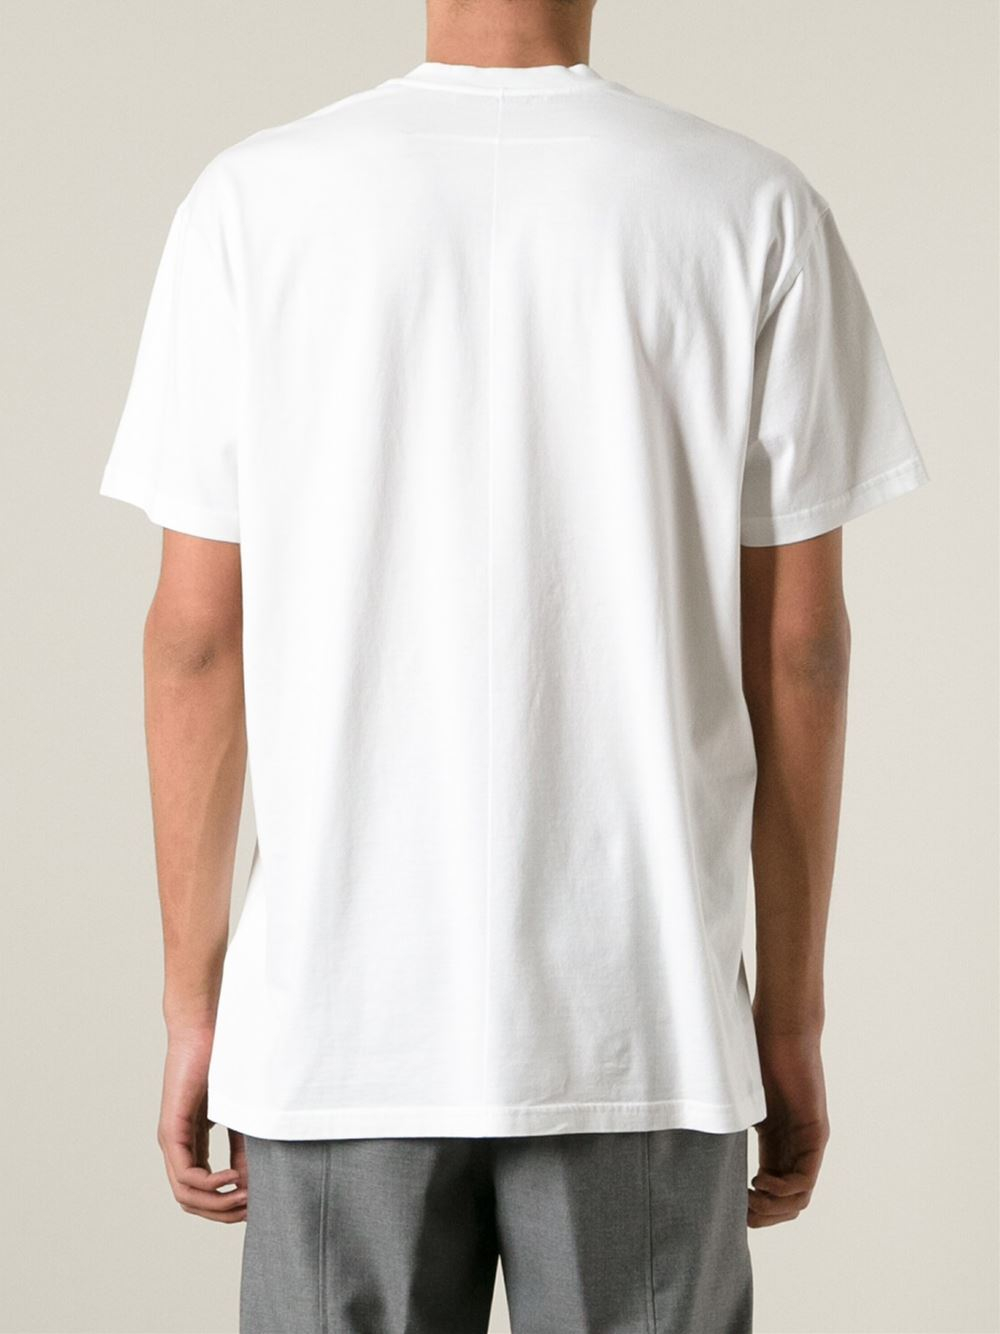 Givenchy god bless cotton t shirt in white for men lyst for Givenchy t shirt man